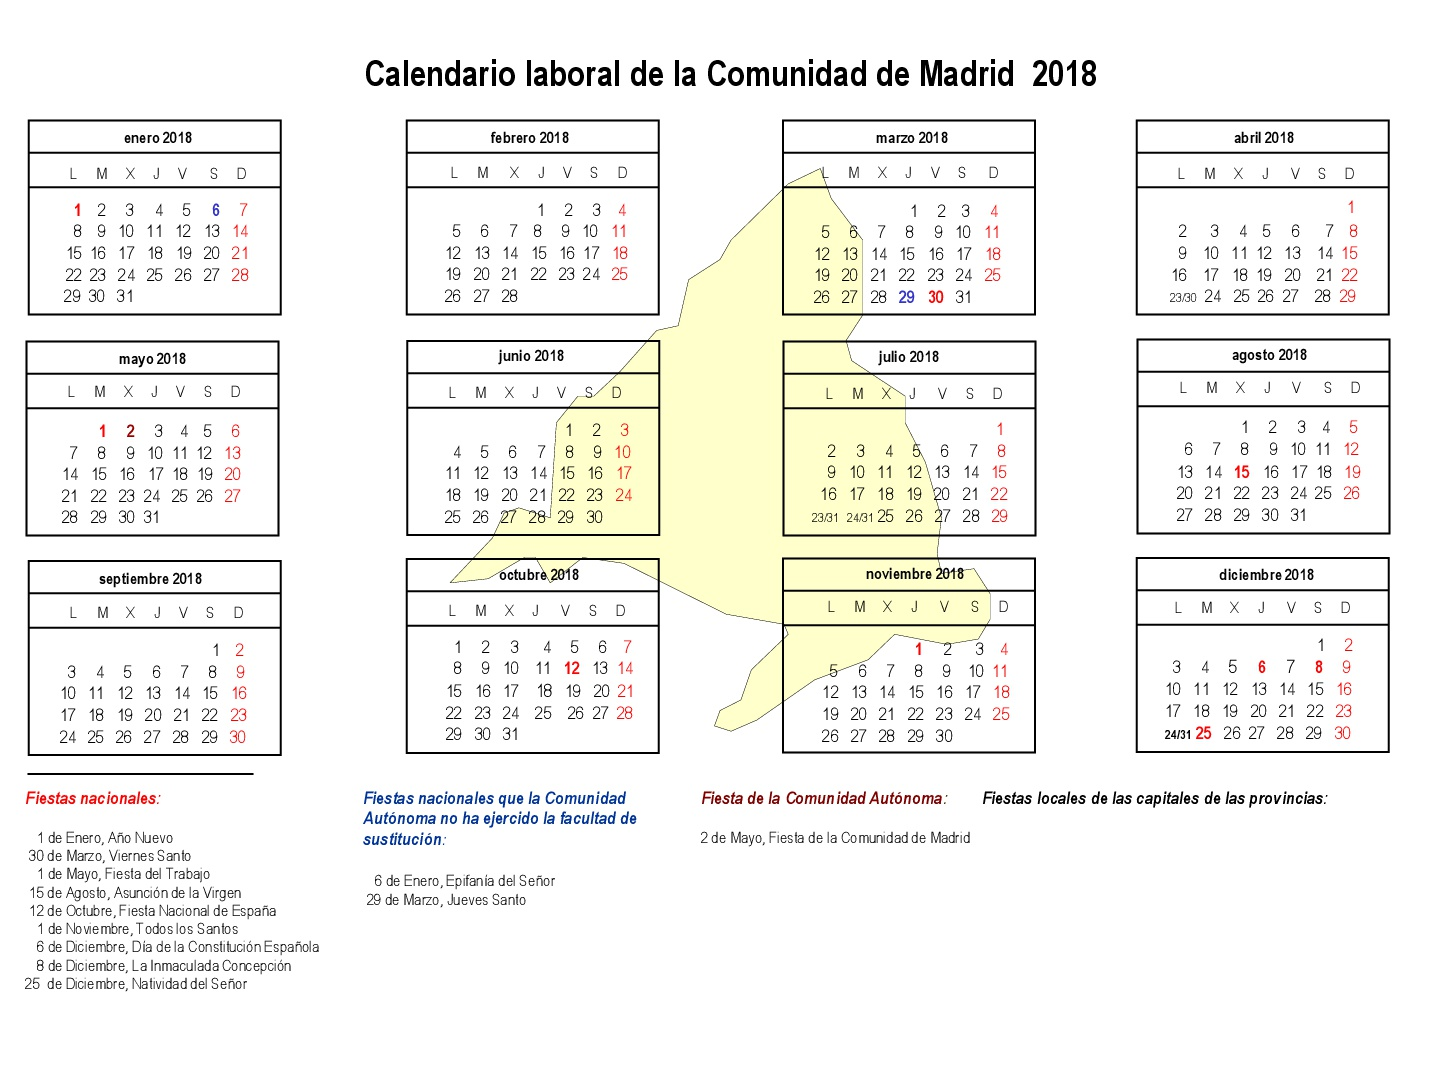 Calendario Laboral de la Comunidad de Madrid, 2018